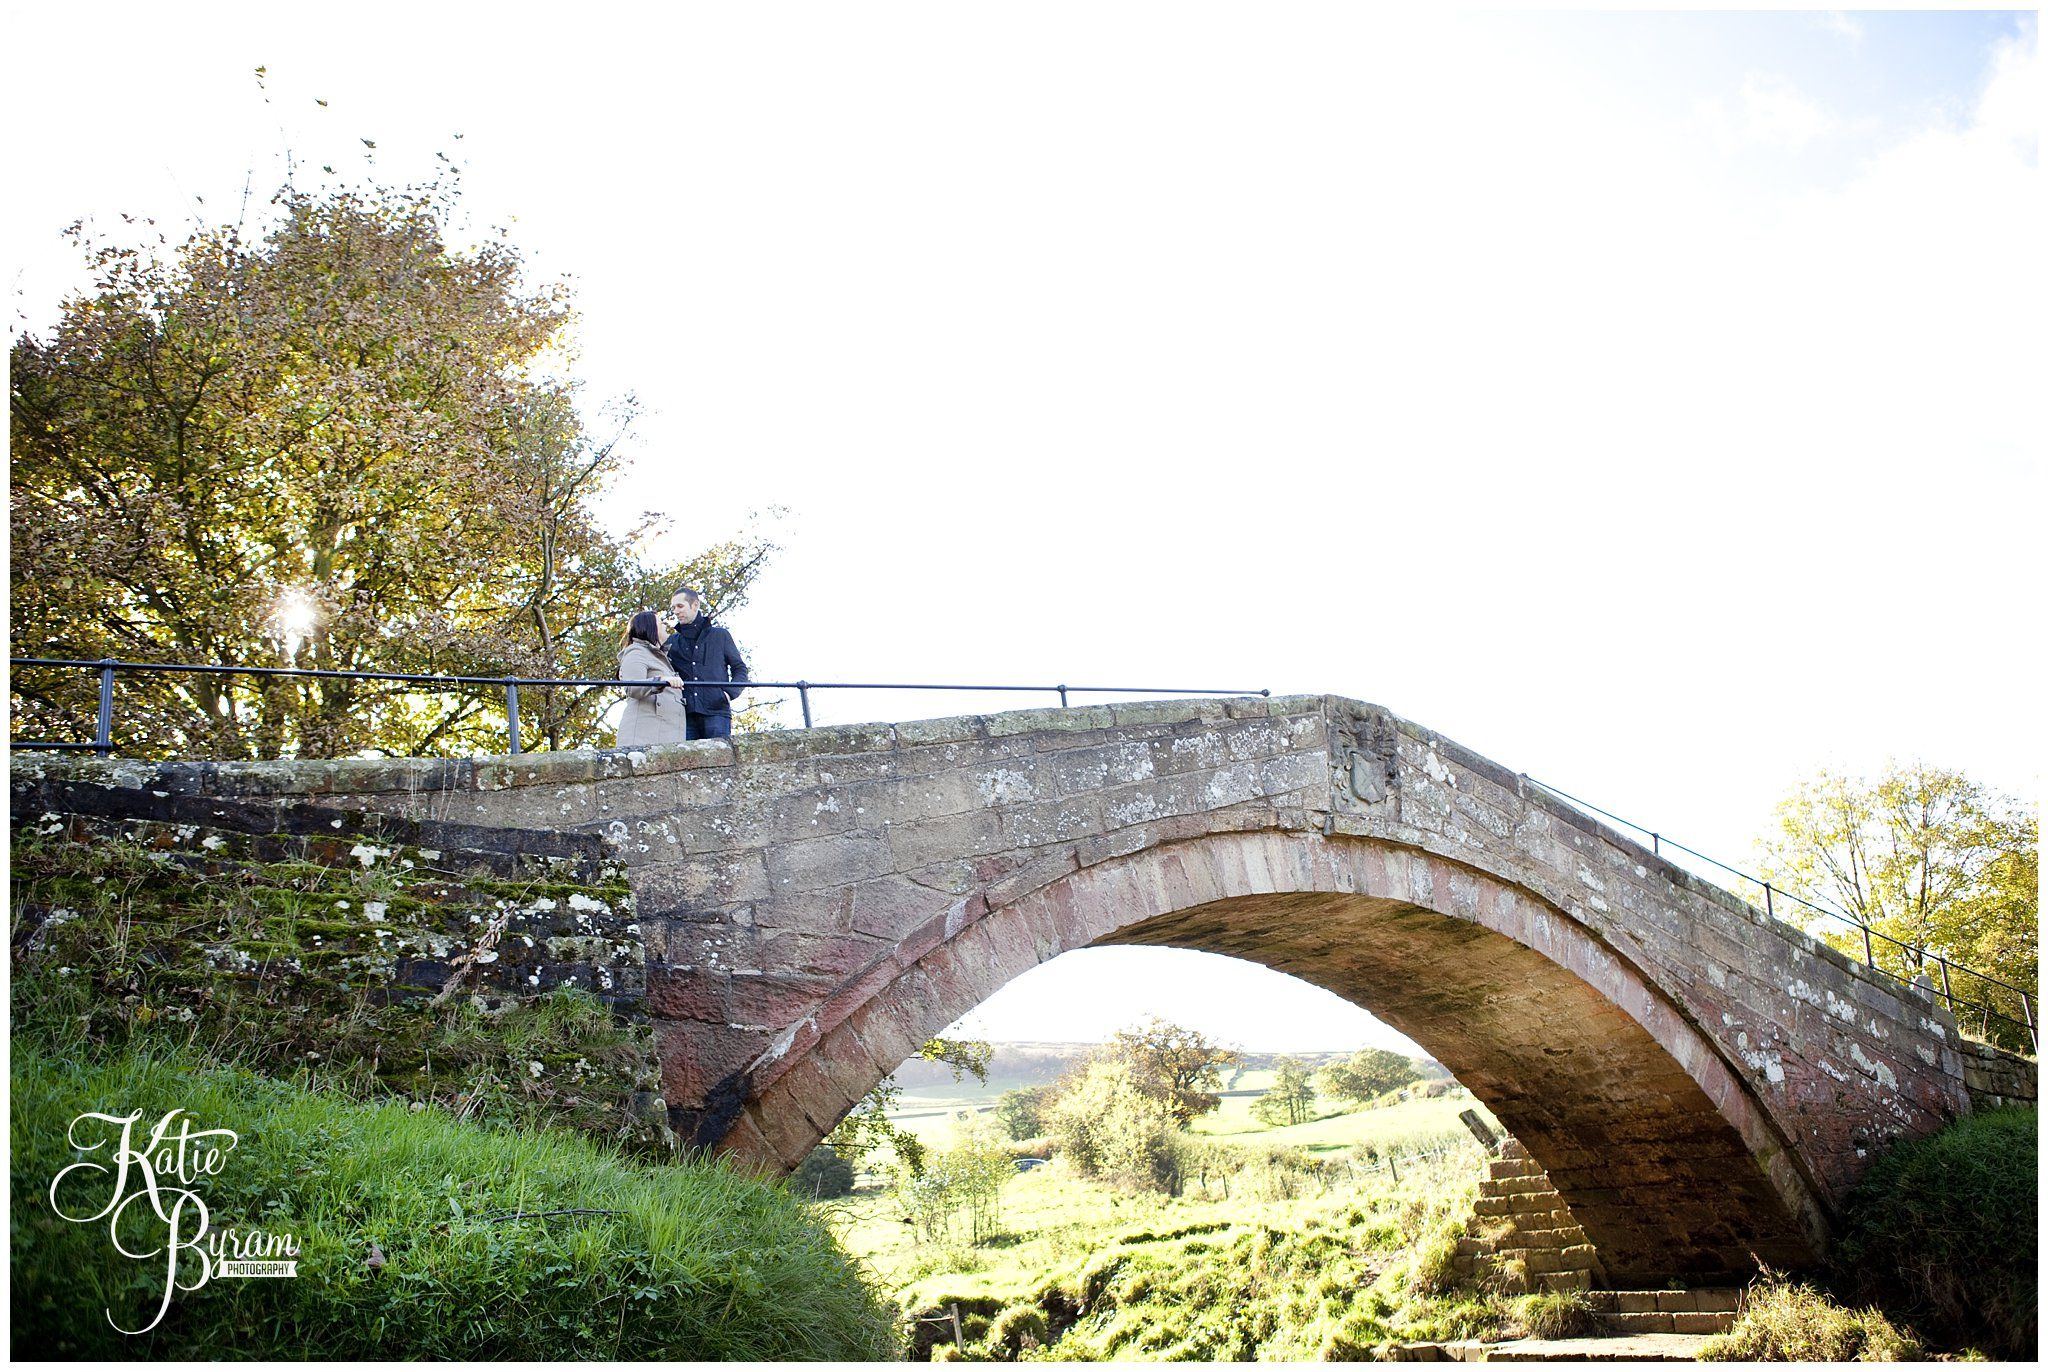 Danby Castle, Duck Bridge, North Yorkshire, Engagement photoshoot, pre-wedding photoshoot, wedding bridge, engagement, katie byram photography, engagement ideas